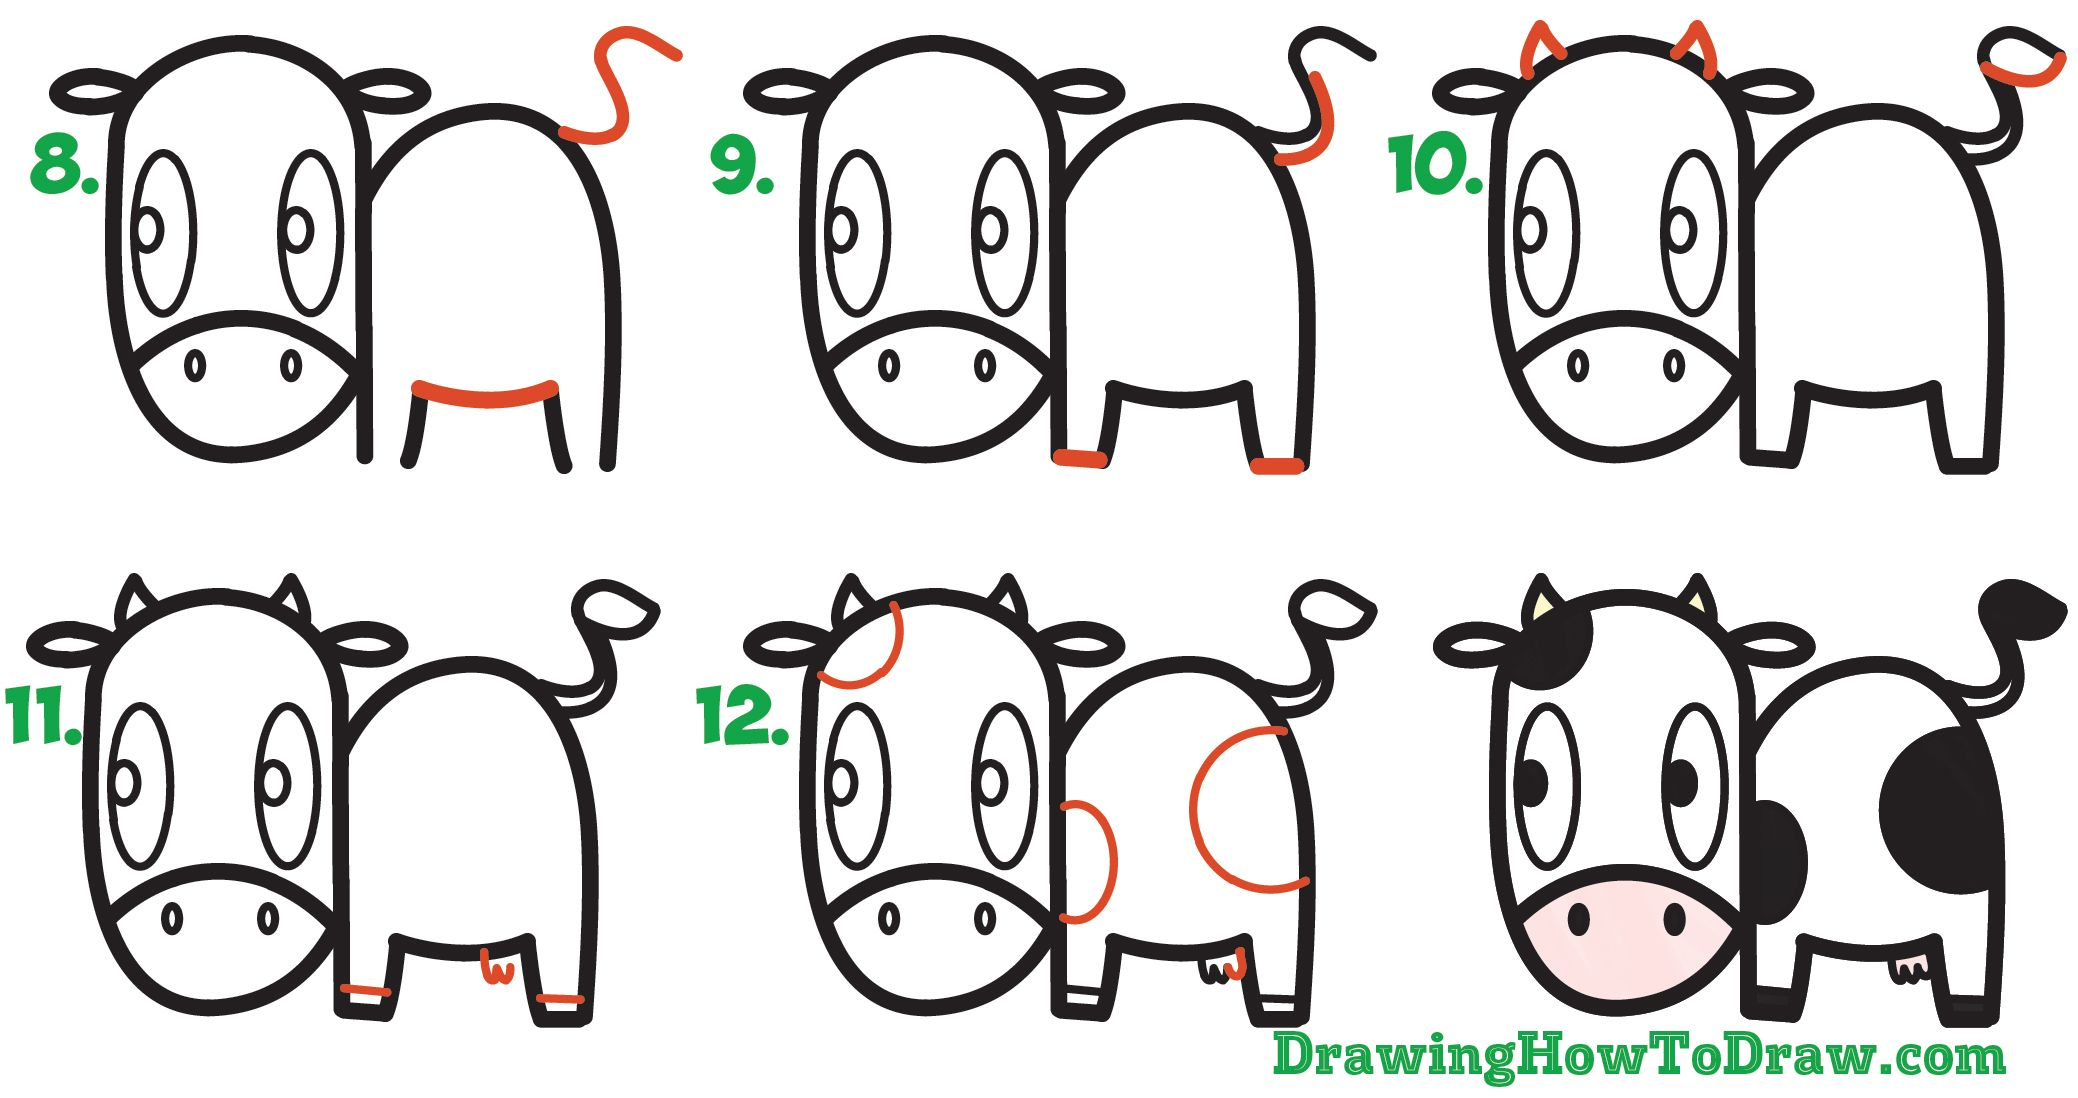 How To Draw A Cute Cartoon Kawaii Cow Easy Step By Step Drawing Tutorial For Kids How To Draw Step By Step Drawing Tutorials Cow Drawing Drawing Tutorials For Kids